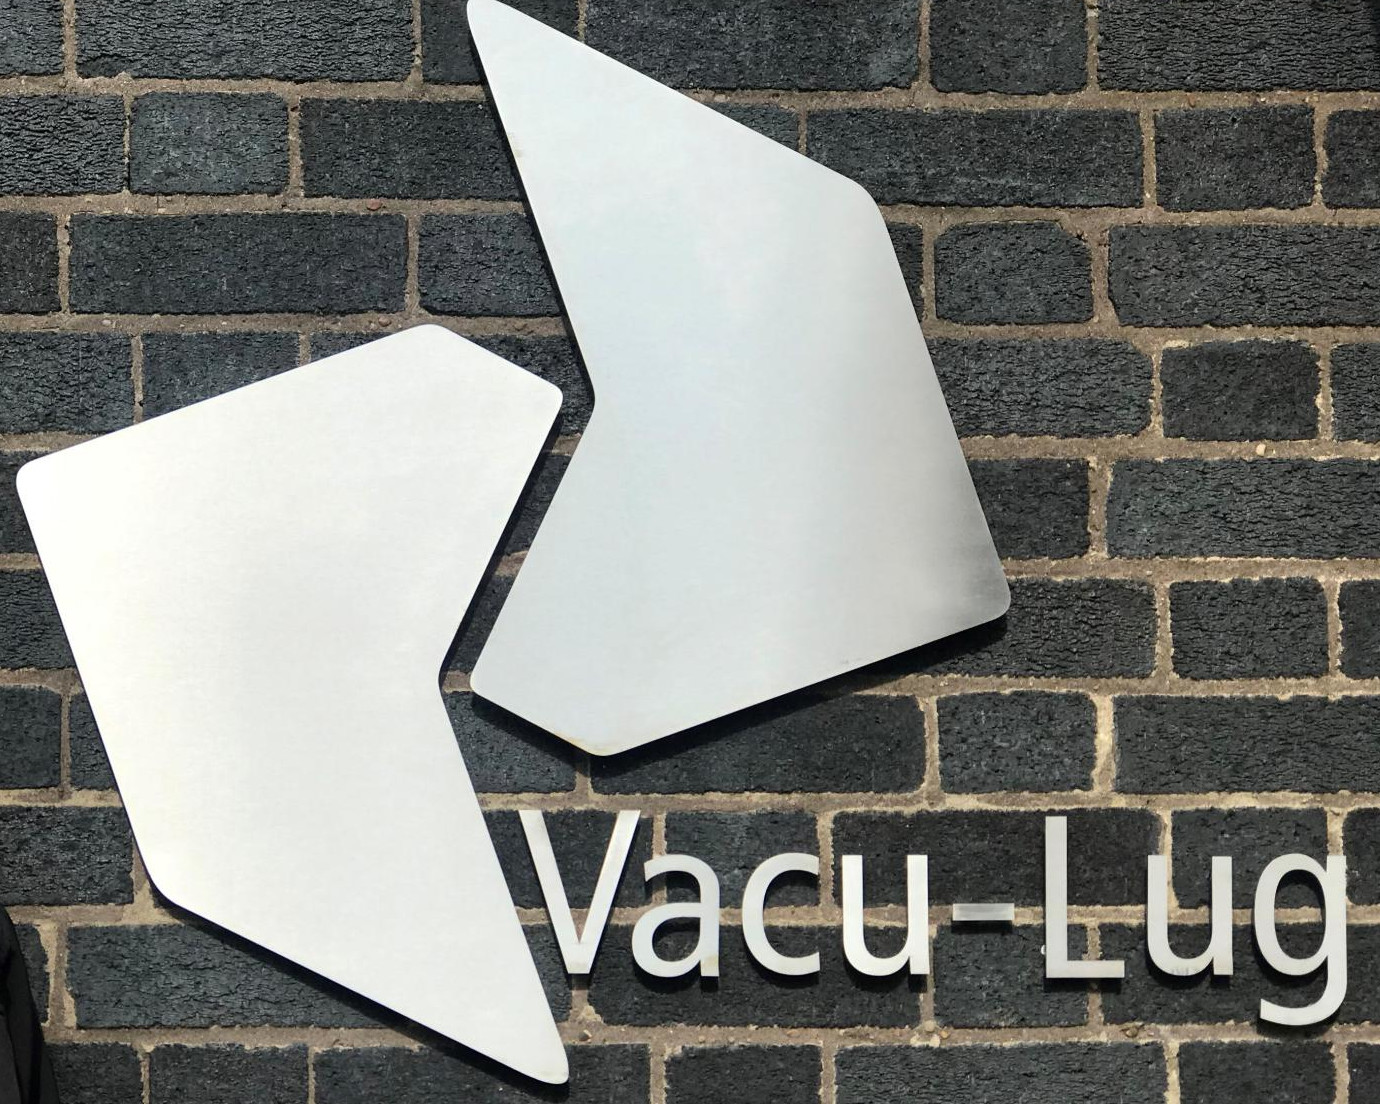 Vaculug former directors sue new owner